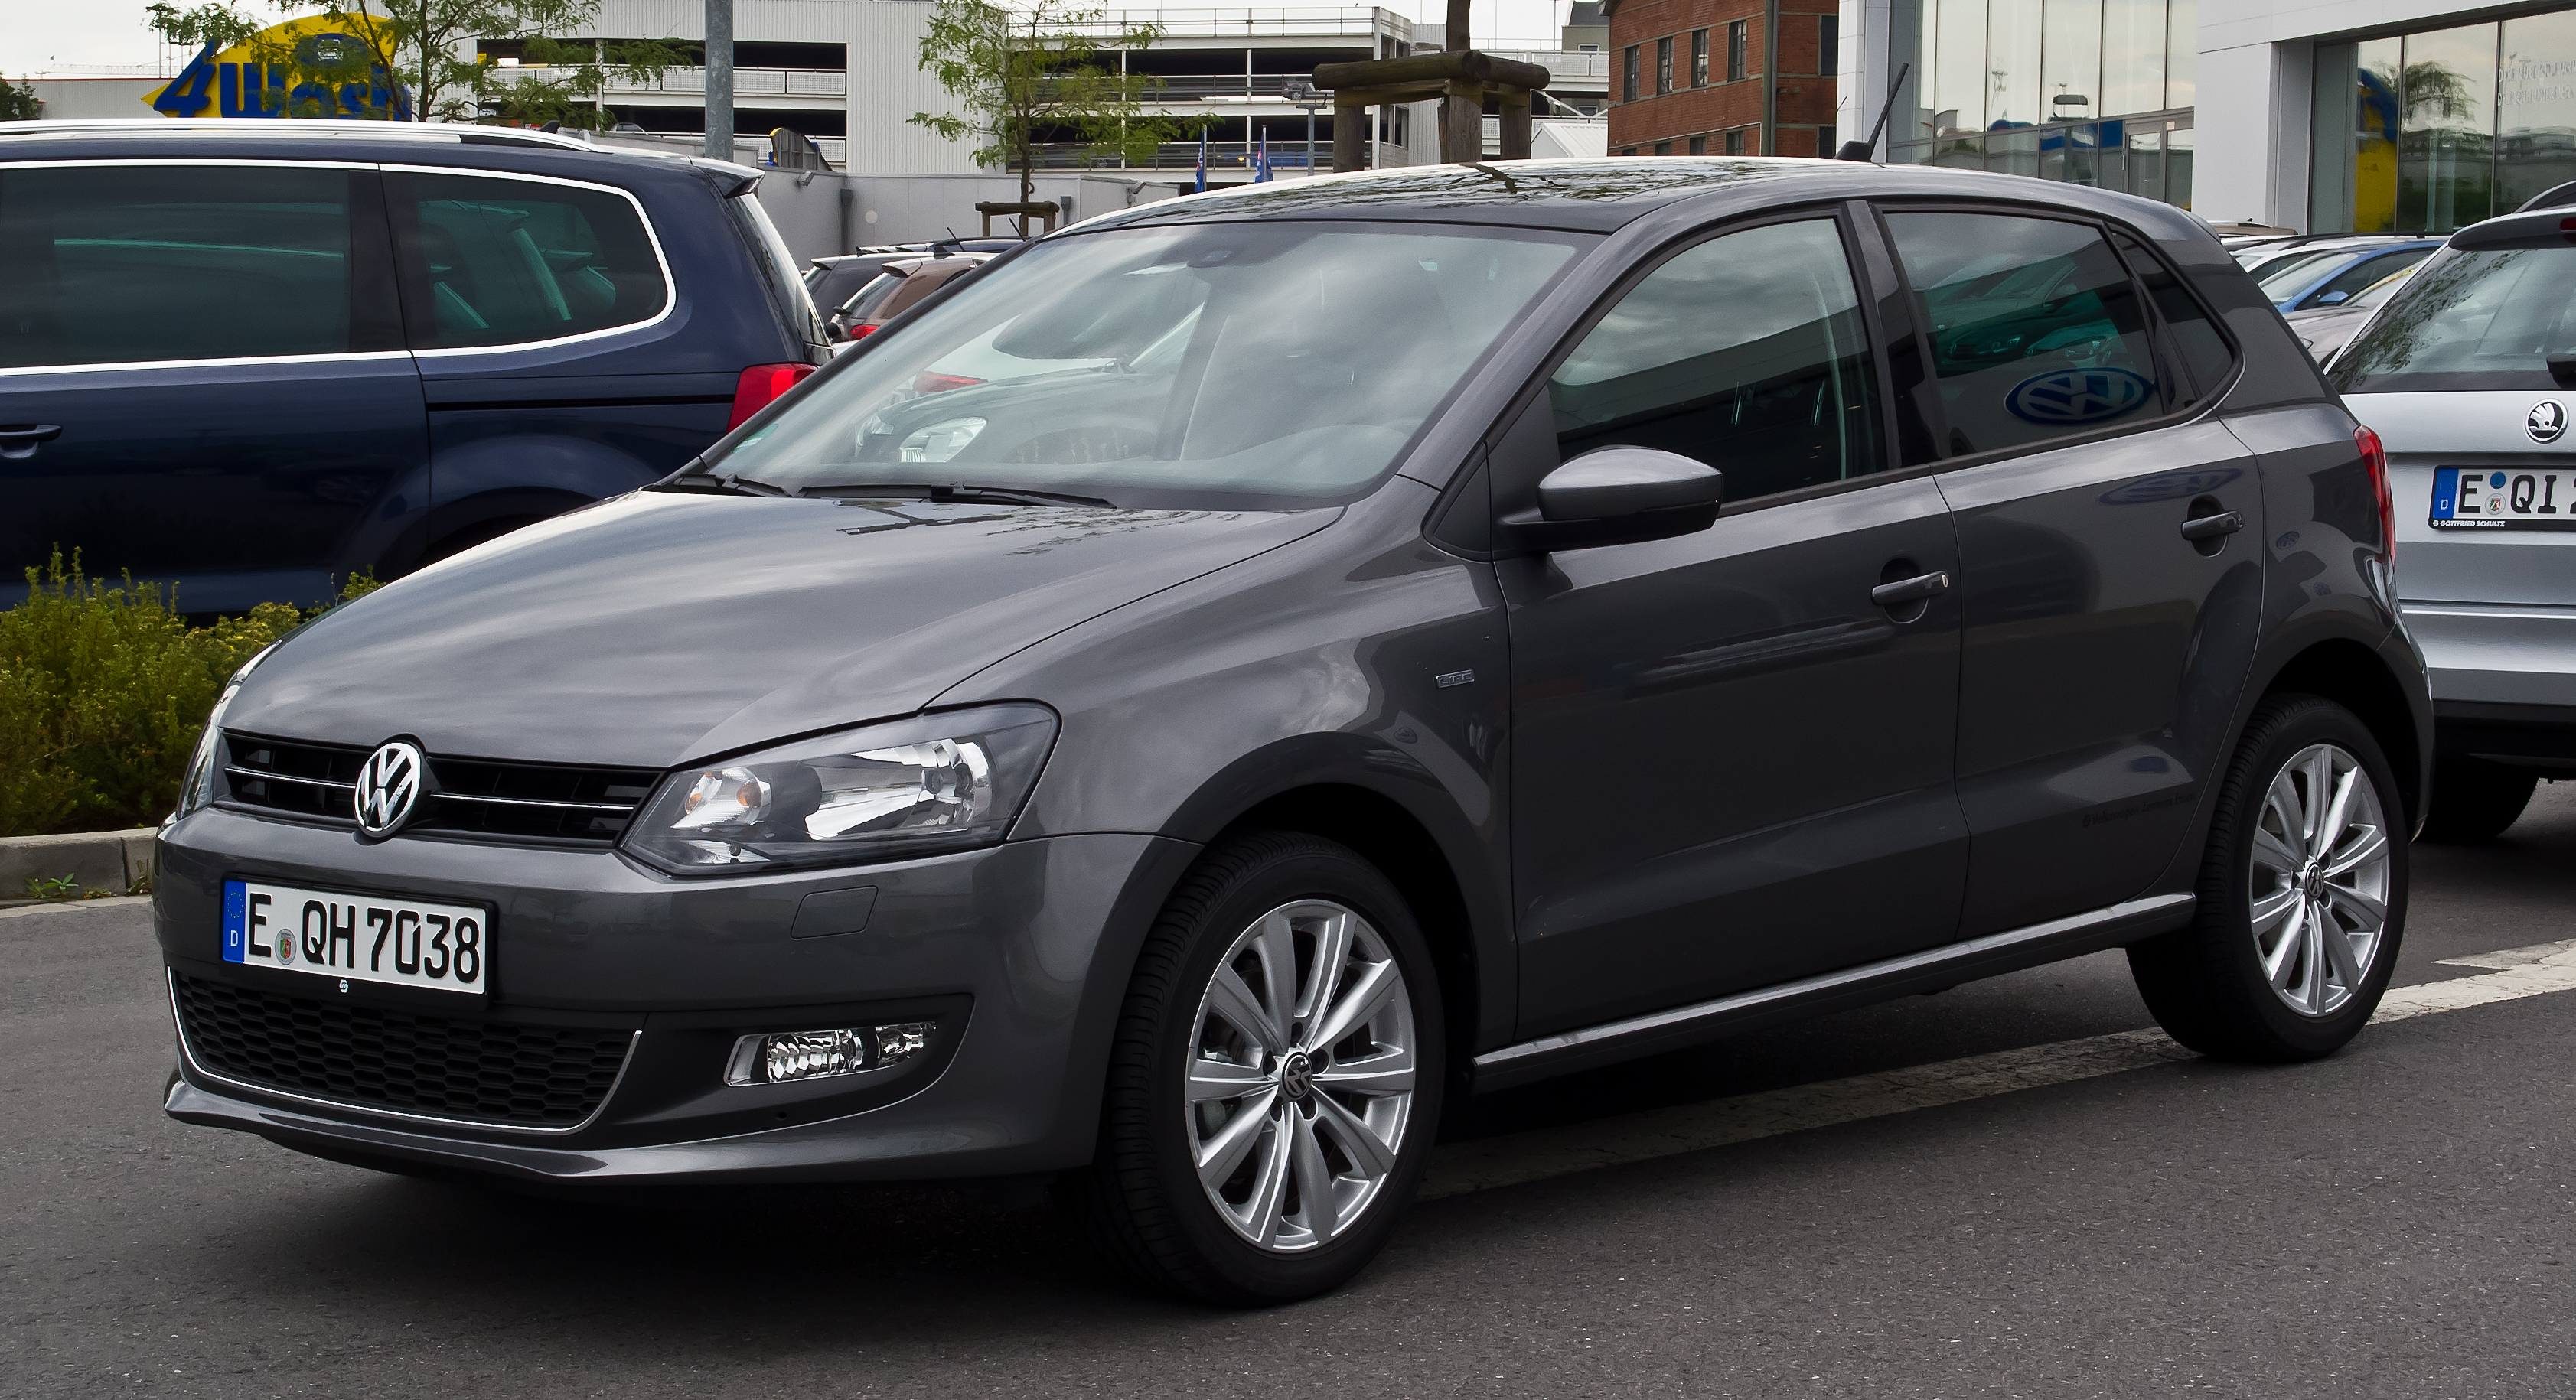 file vw polo 1 2 tsi life v frontansicht 11 august 2013 wikimedia commons. Black Bedroom Furniture Sets. Home Design Ideas